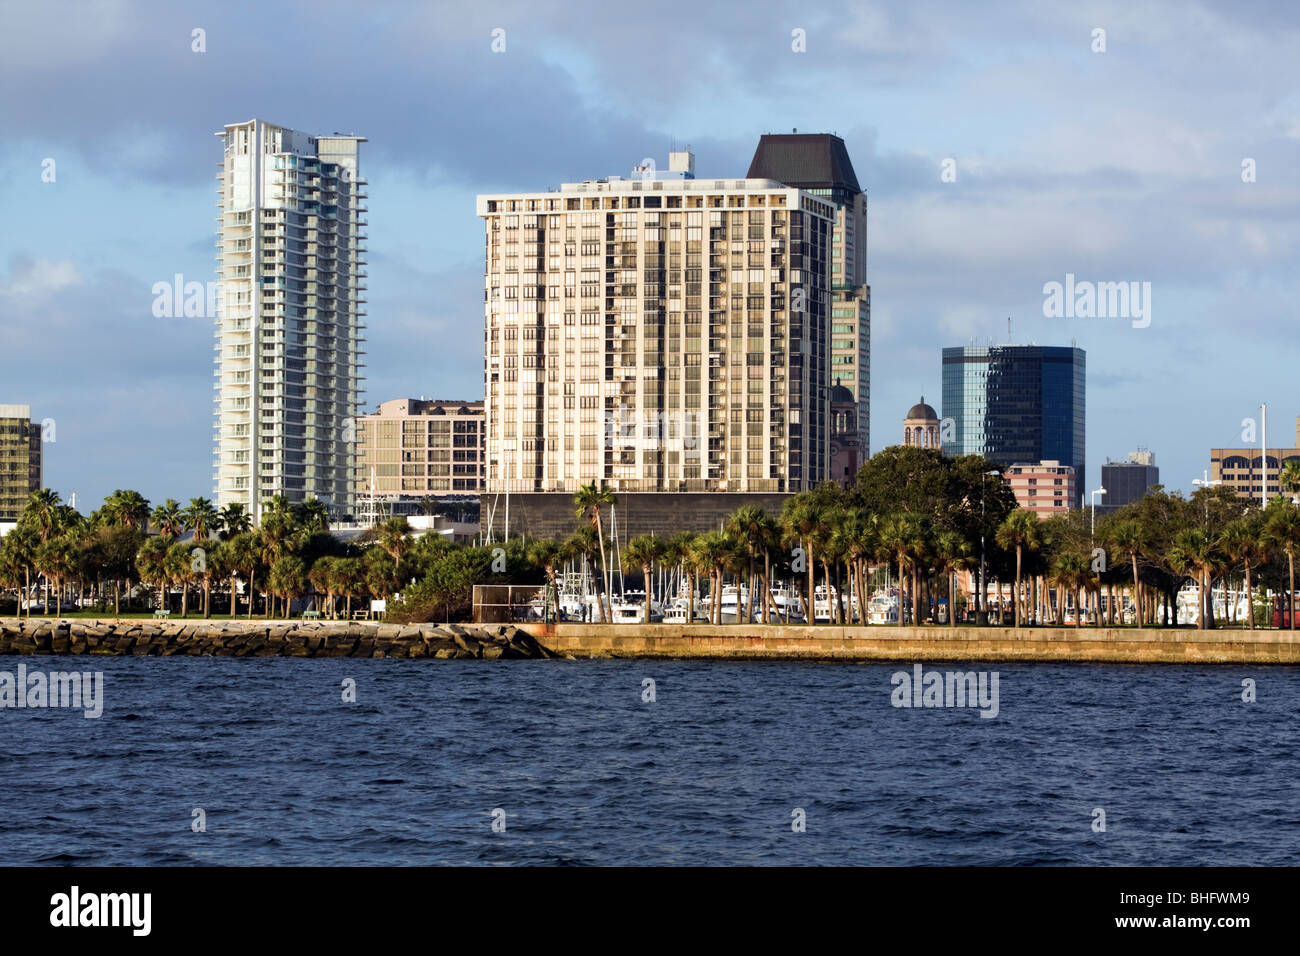 St. Petersburg, Florida - Stock Image